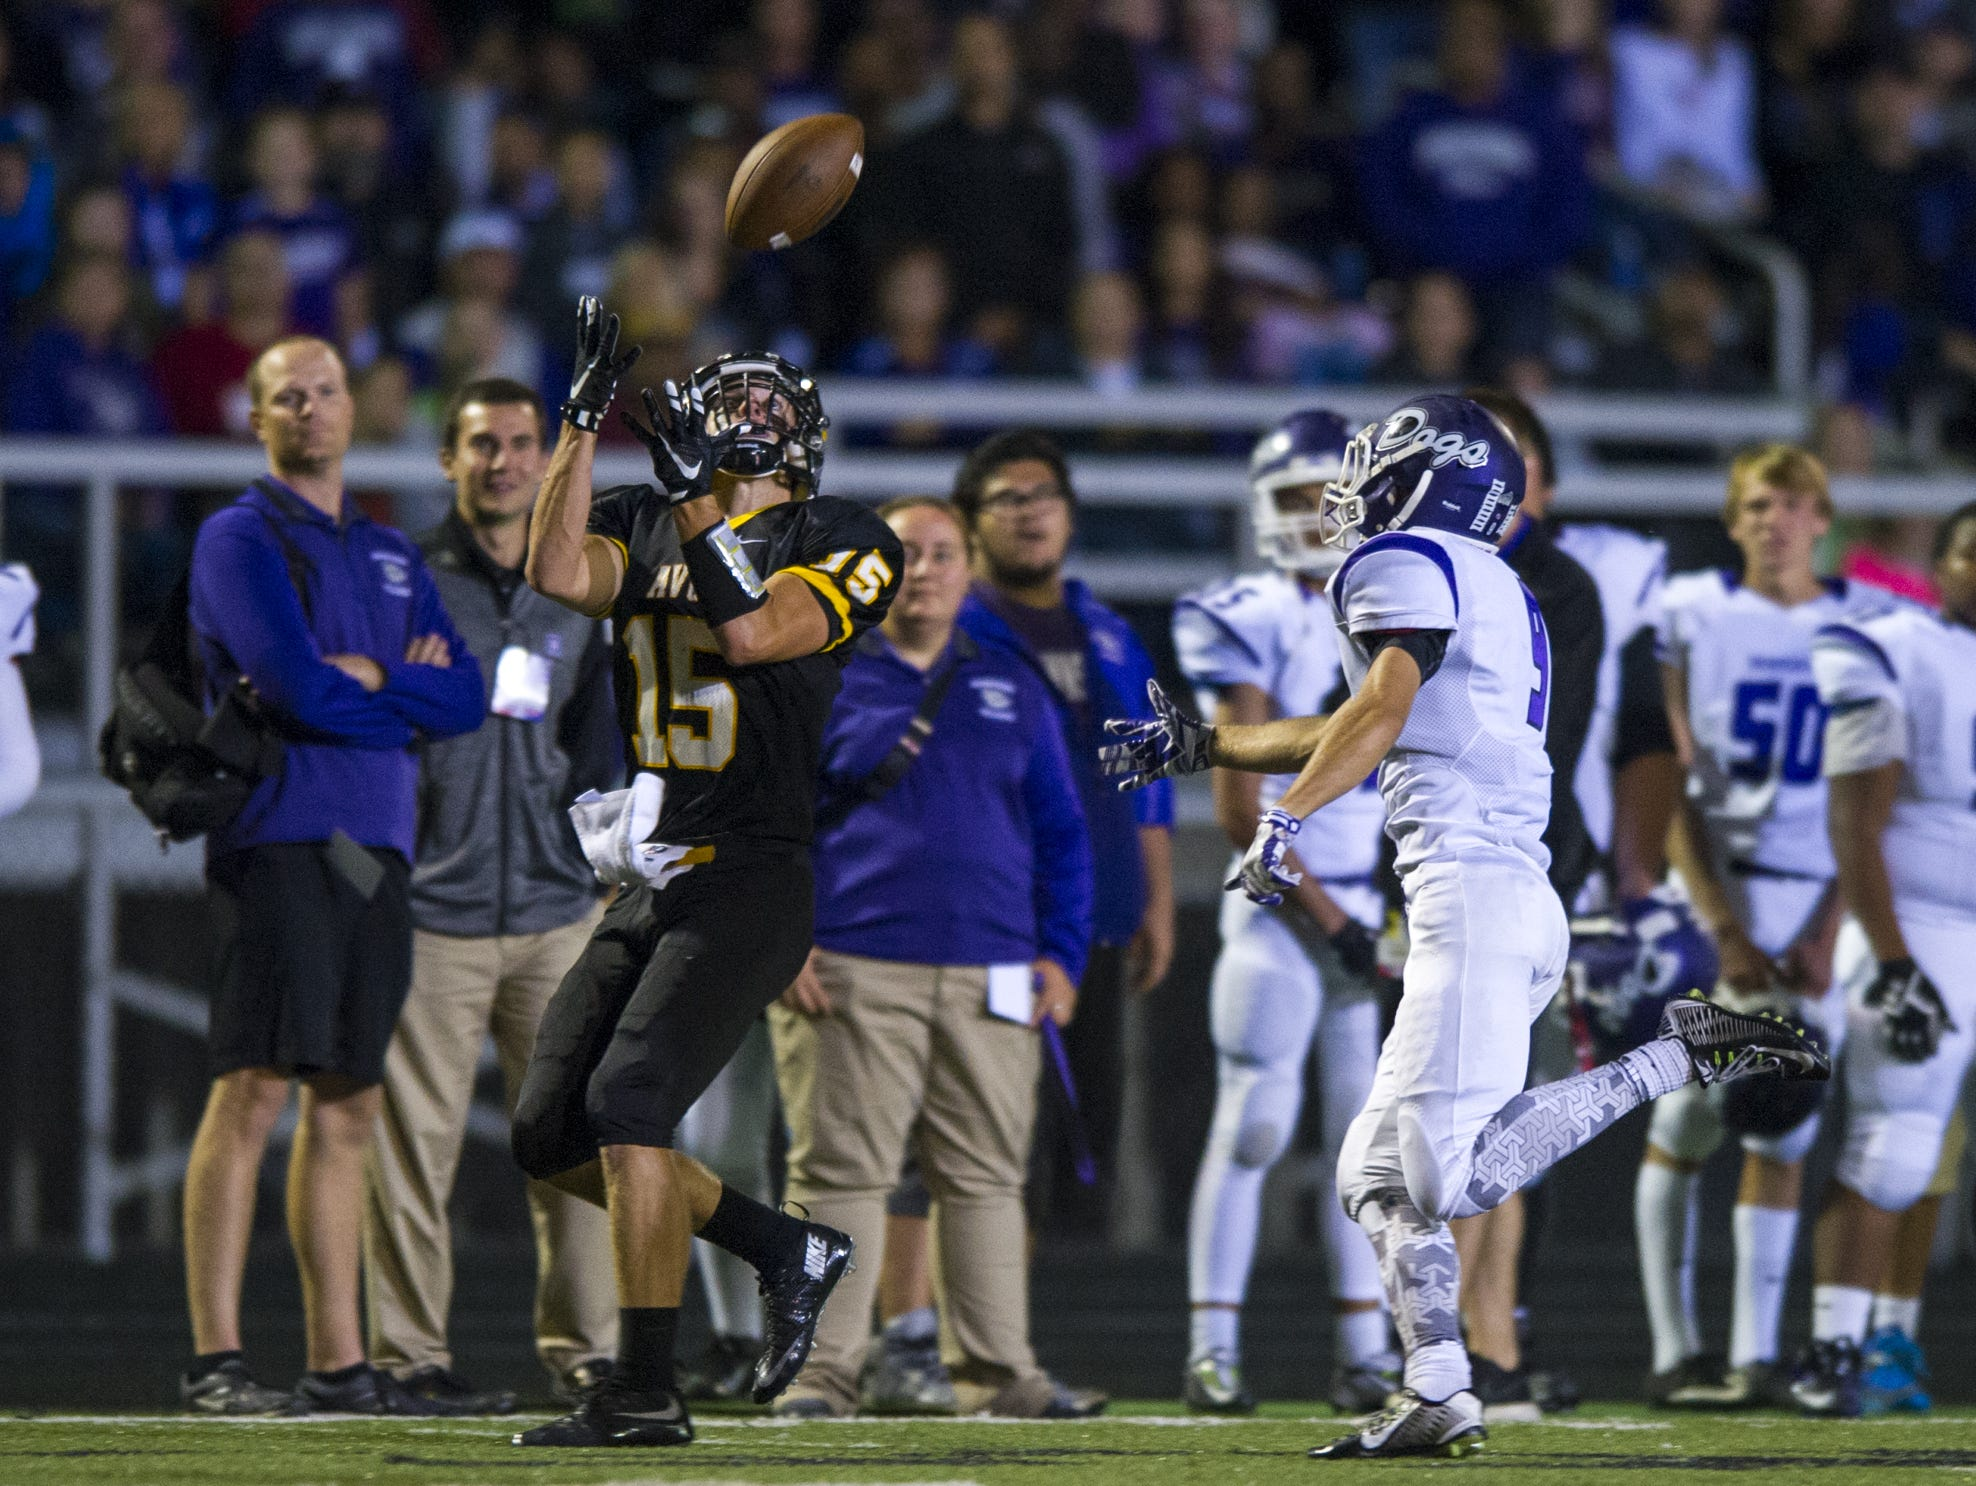 Avon WR Andrew Griffin (15) concentrates on the ball to complete the pass on Sept. 11, 2015.